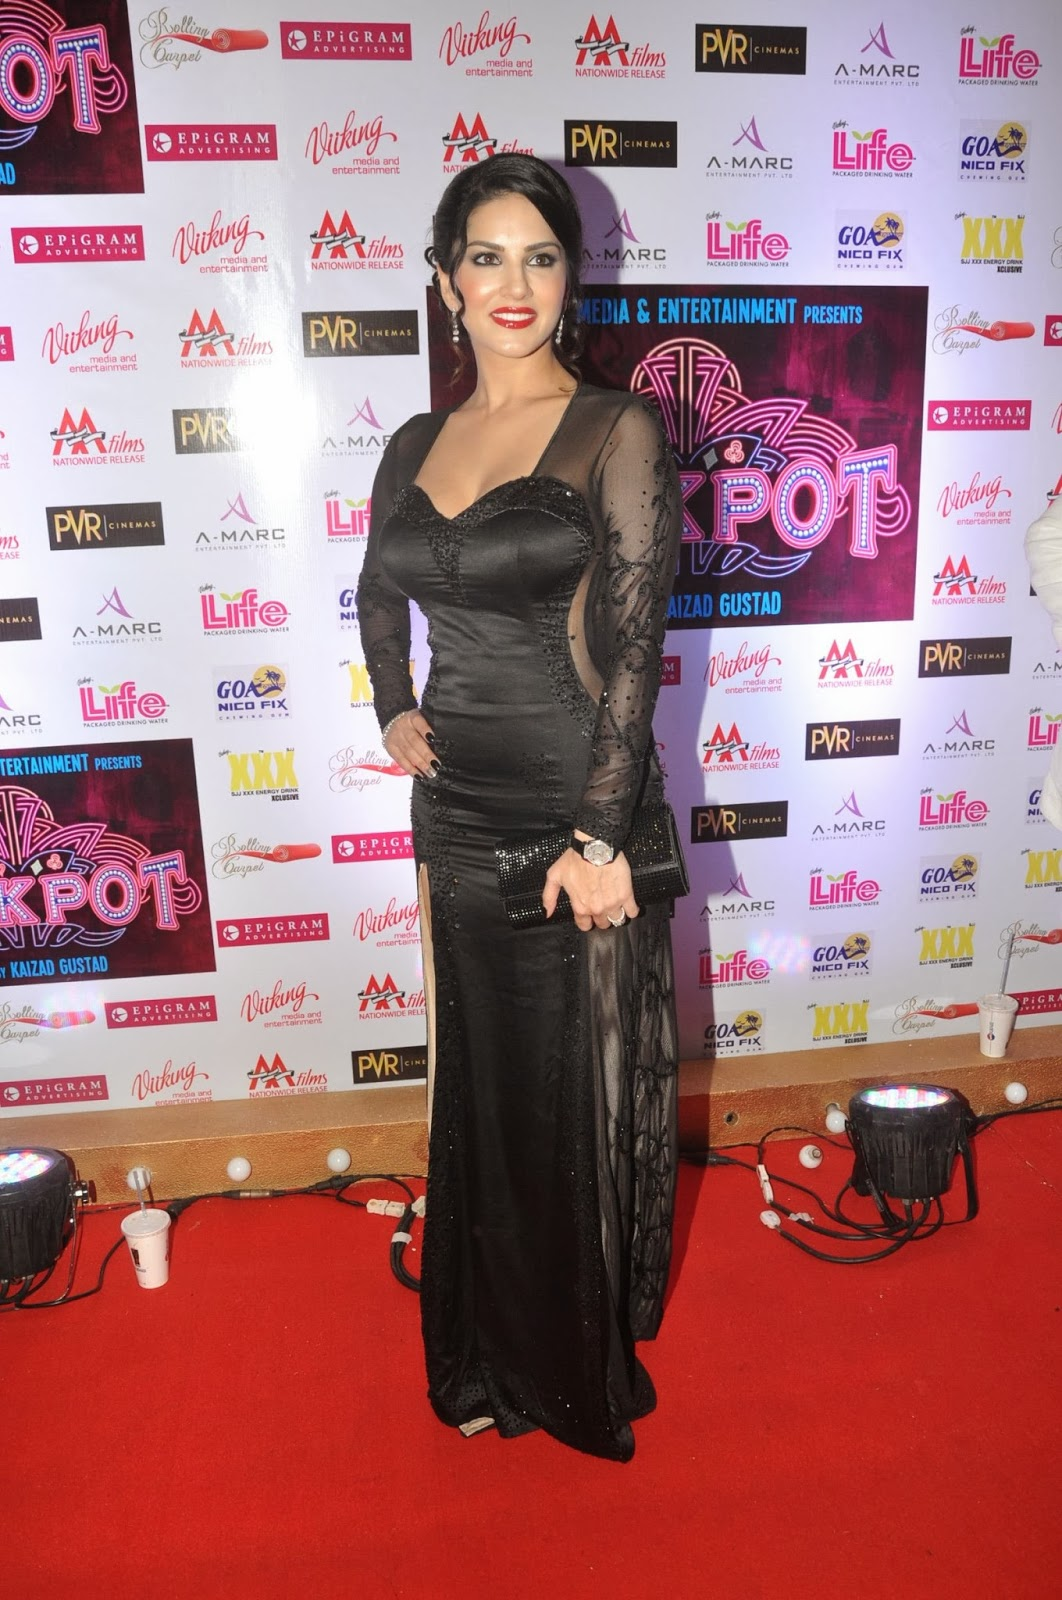 Hbtkollywood Super Sexy Spectacles Sunny Leone Ses longues pattes noires See-Through Robe à-7123